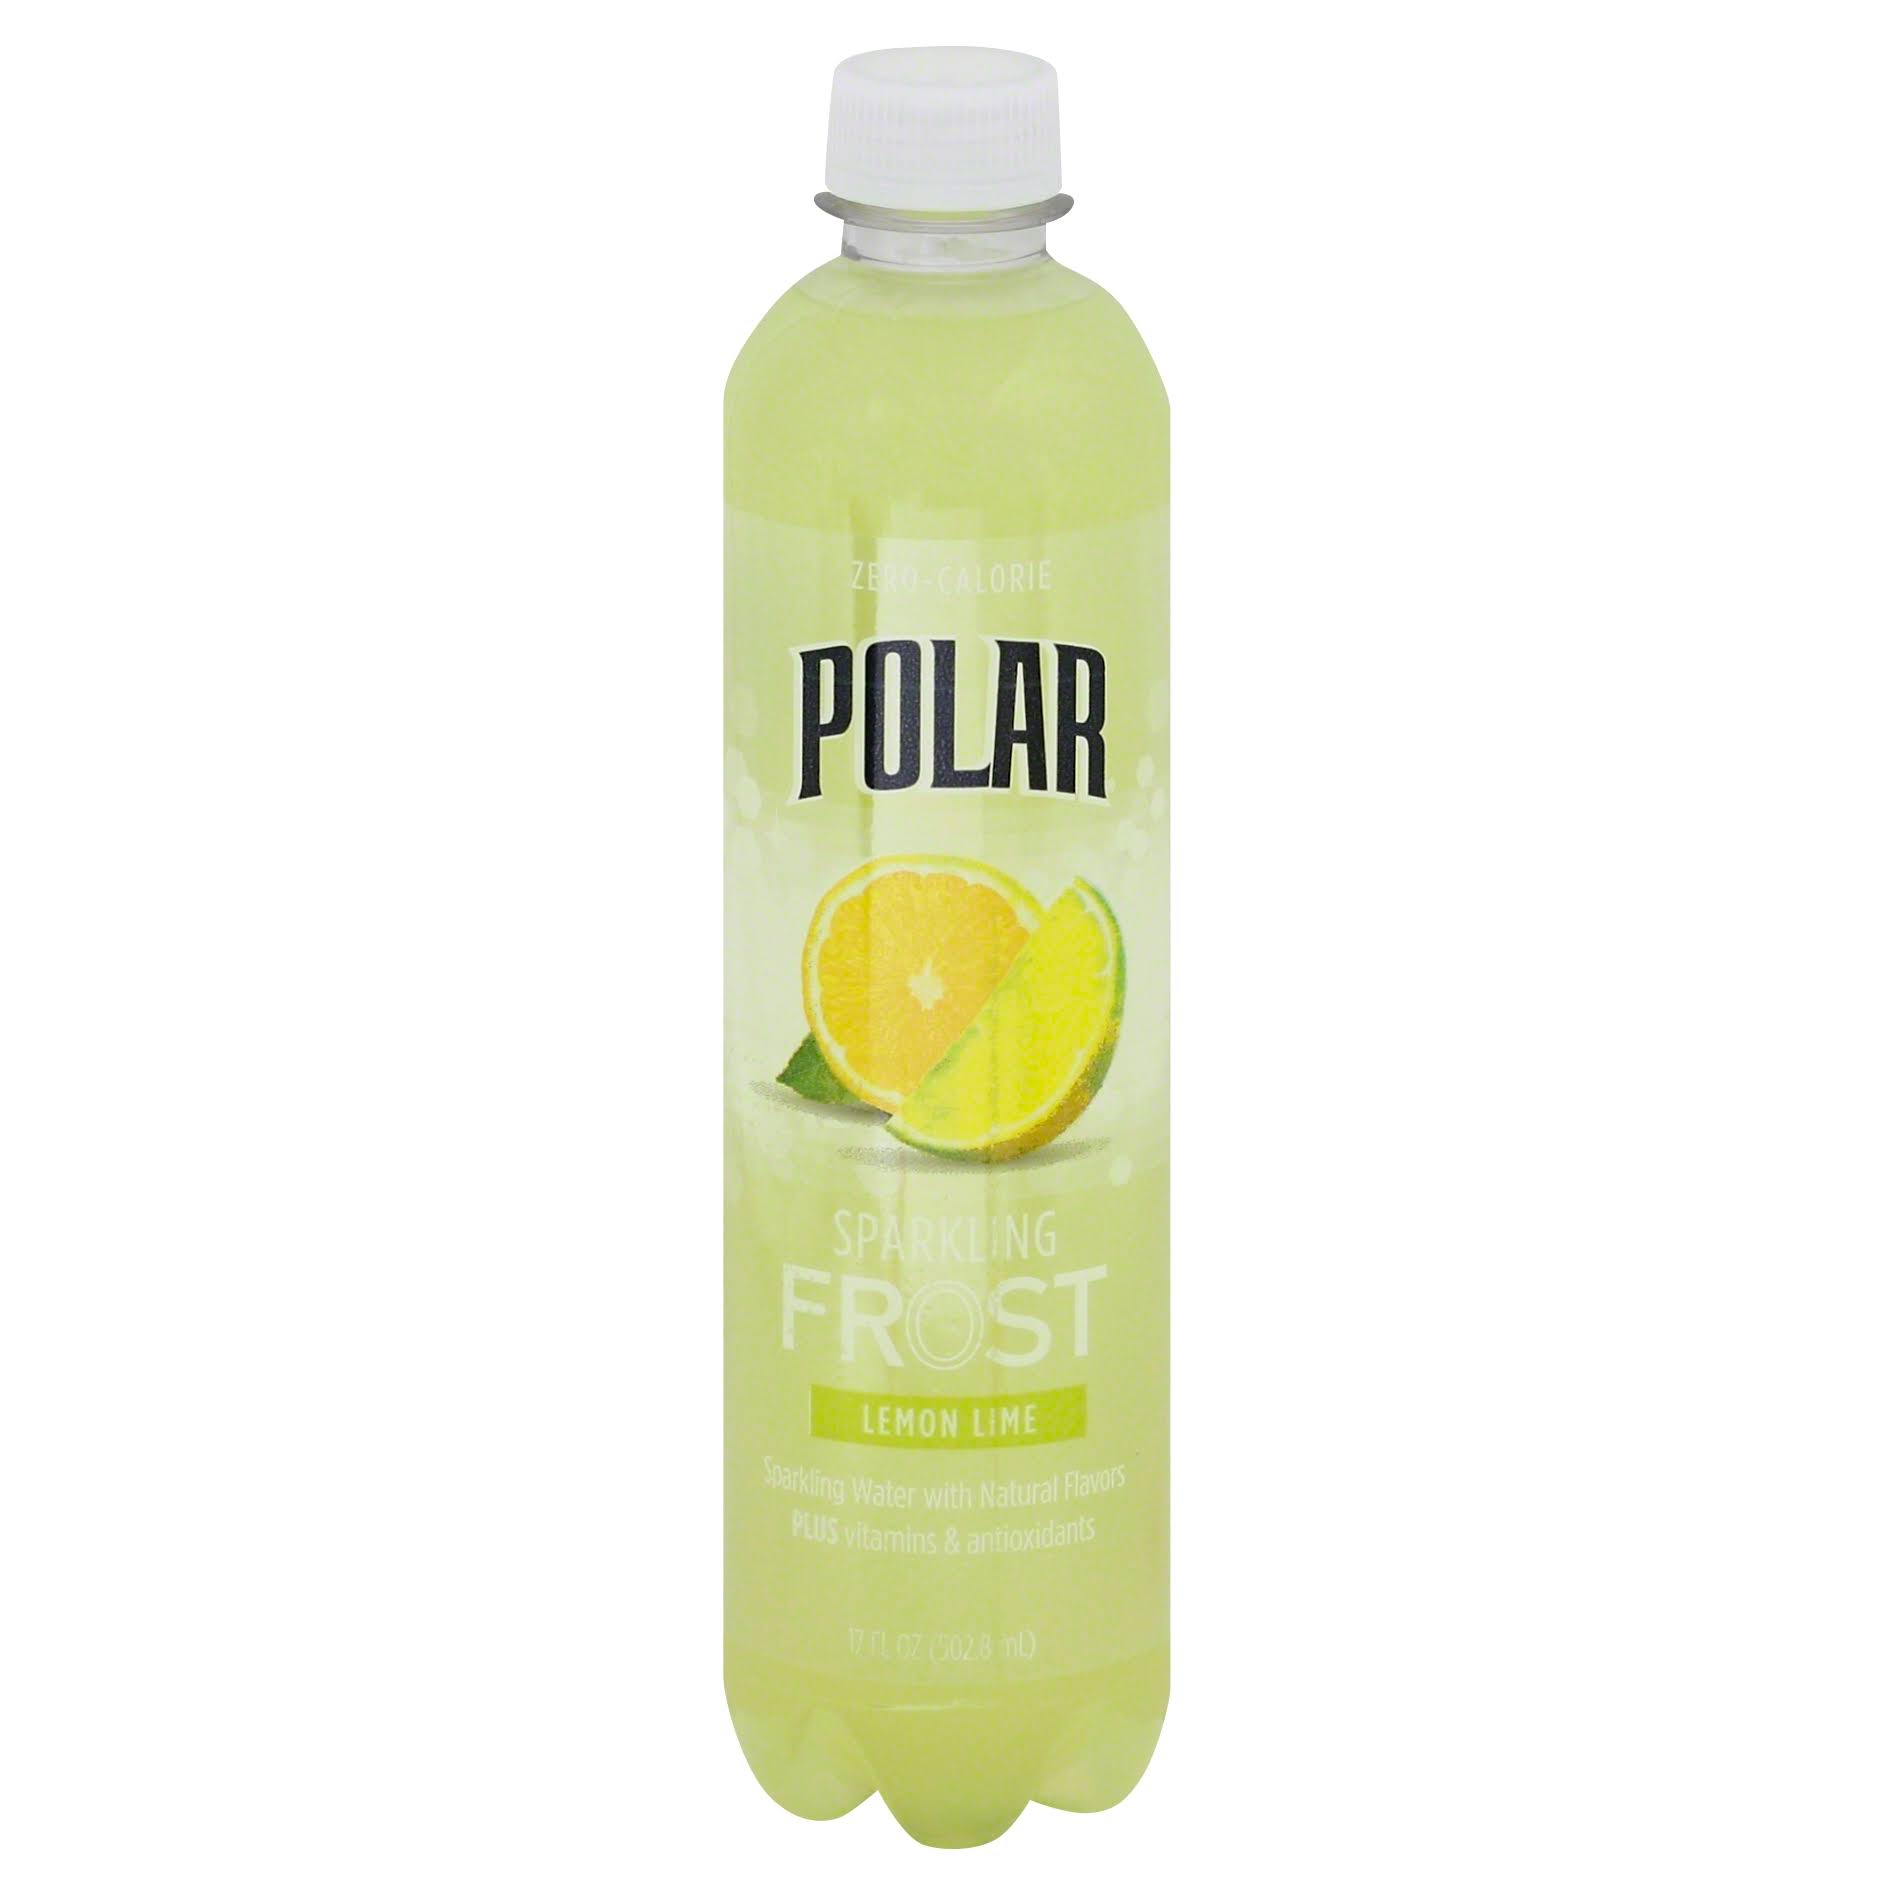 Polar Sparkling Frost Drink - Lemon Lime, 17oz